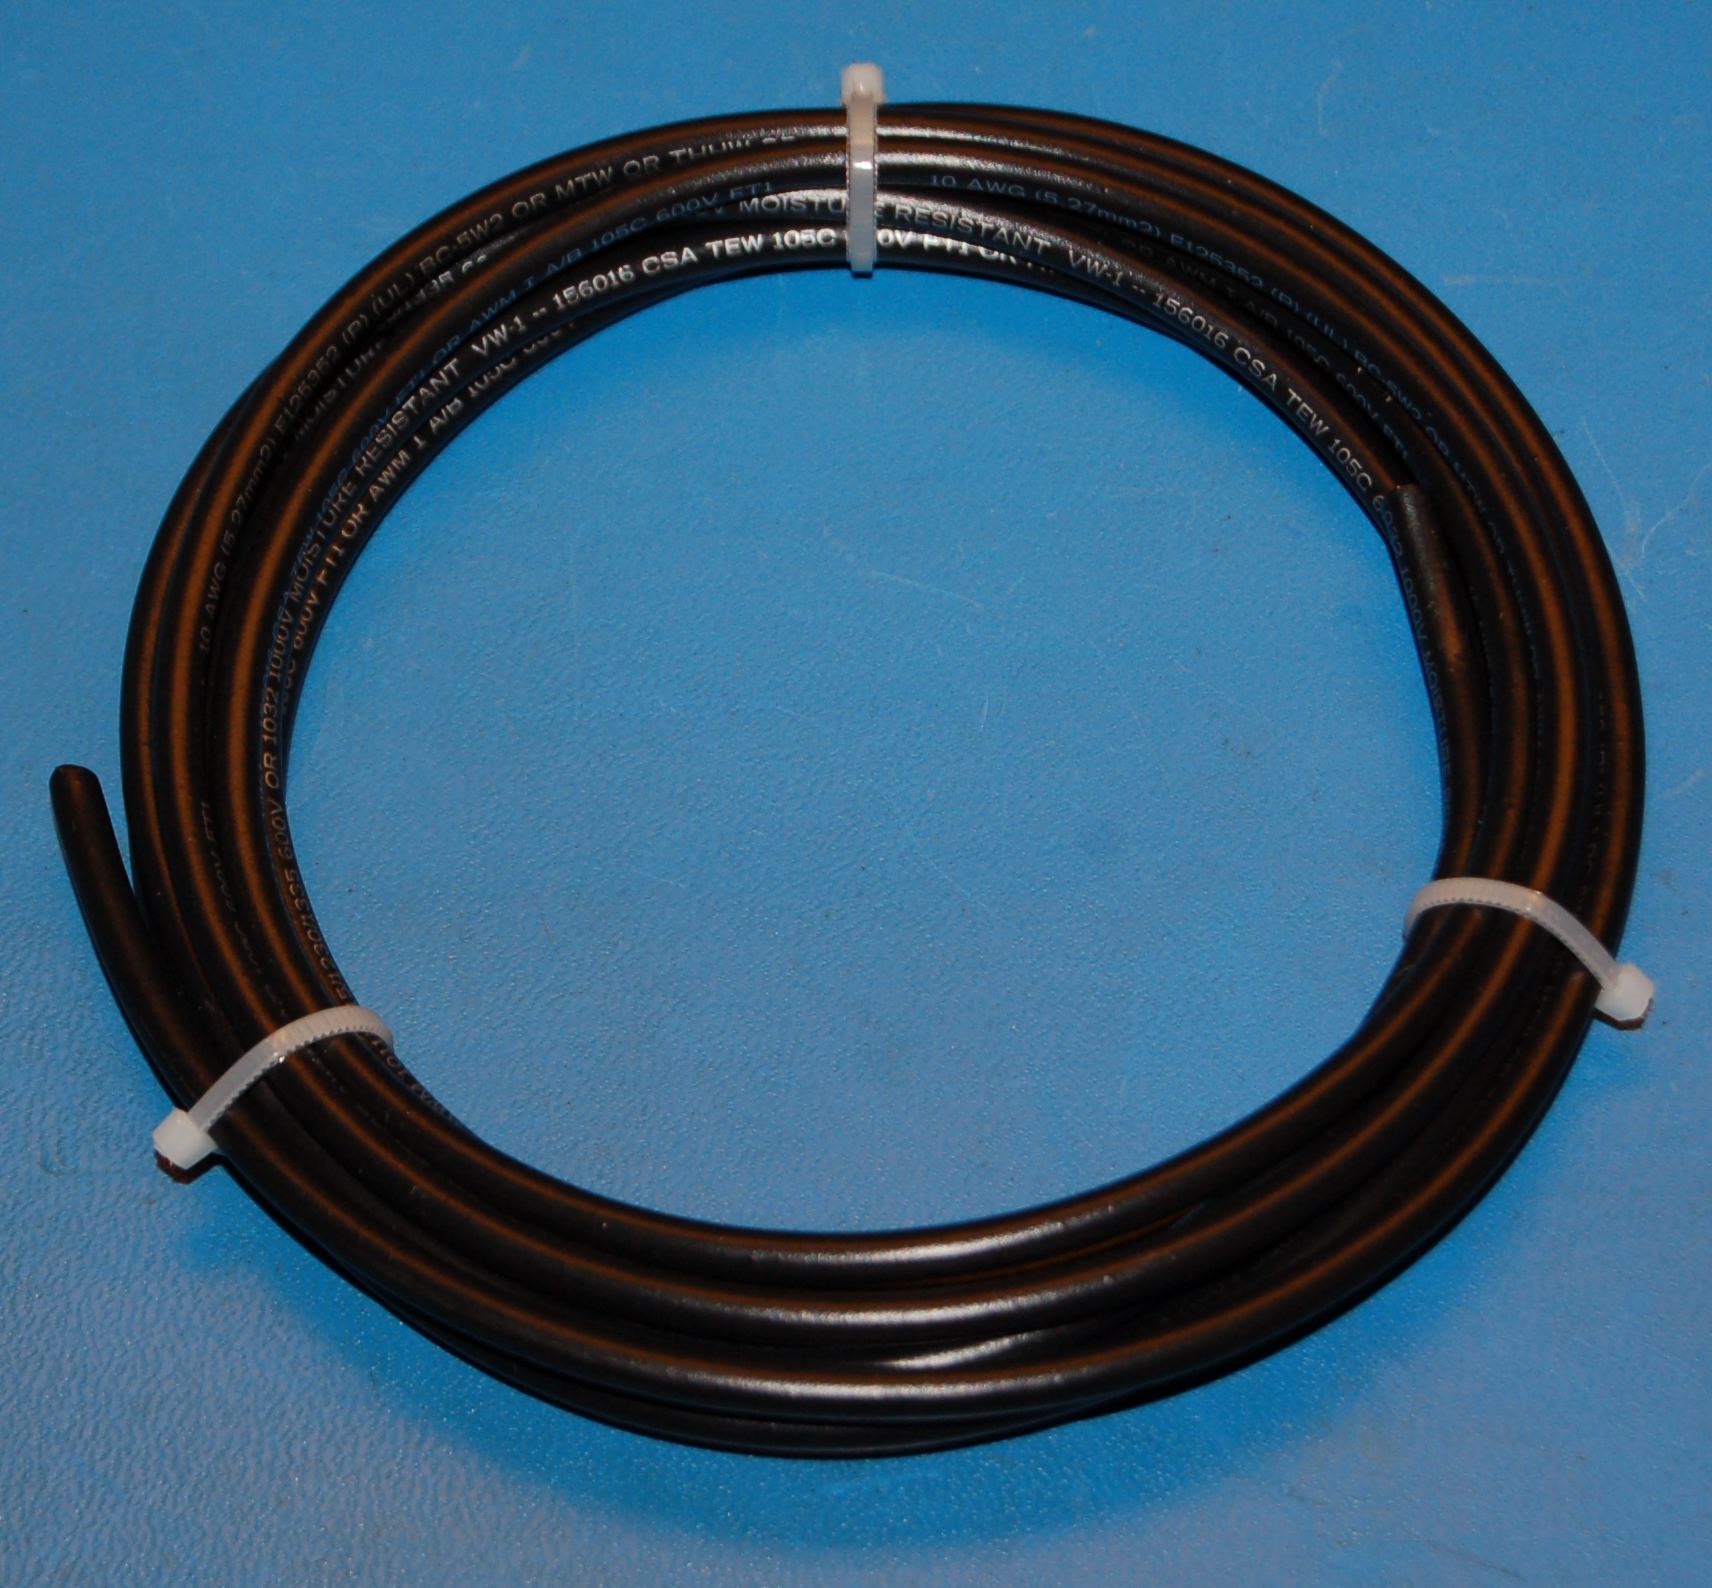 Stranded Copper Wire, 1000V, #10 AWG x 10' (Black)